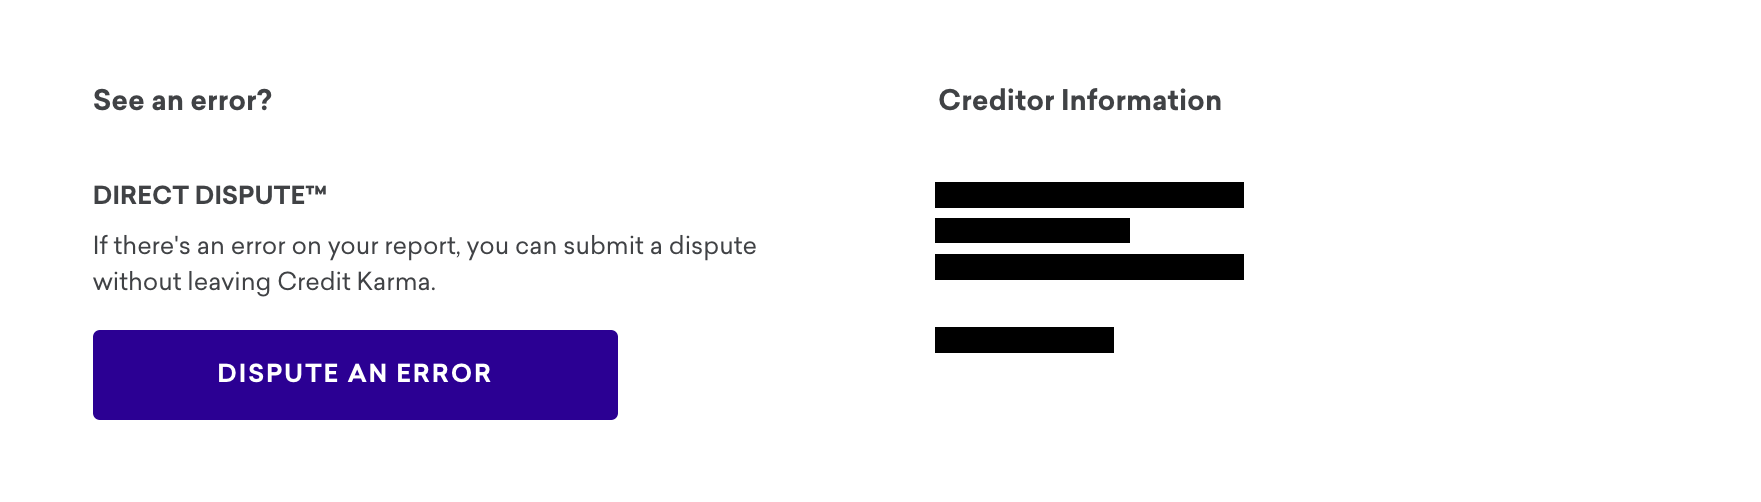 If you spot any errors on your TransUnion credit report, you can dispute  them through Credit Karma's Direct Dispute™ tool.